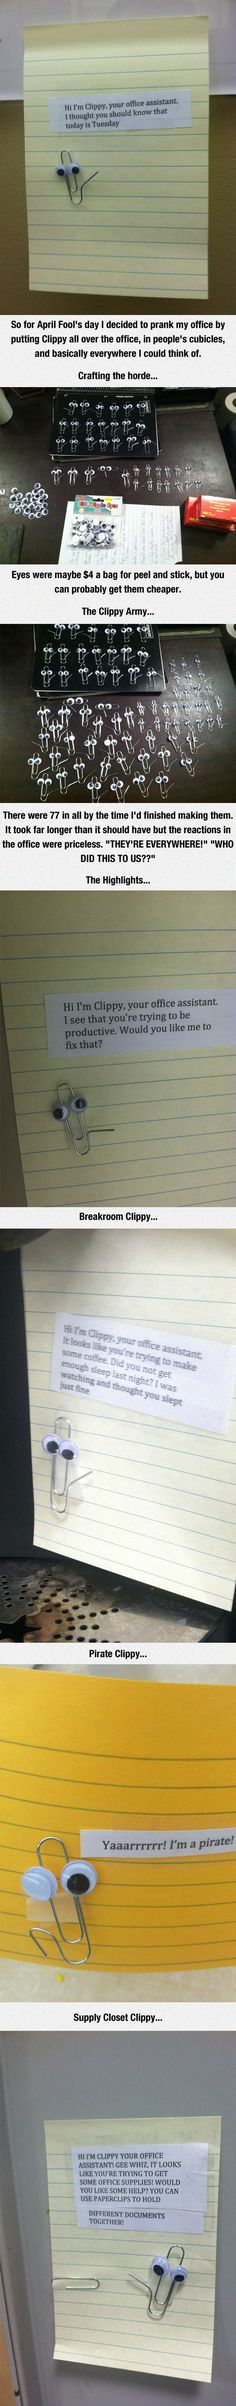 Clippy Appears